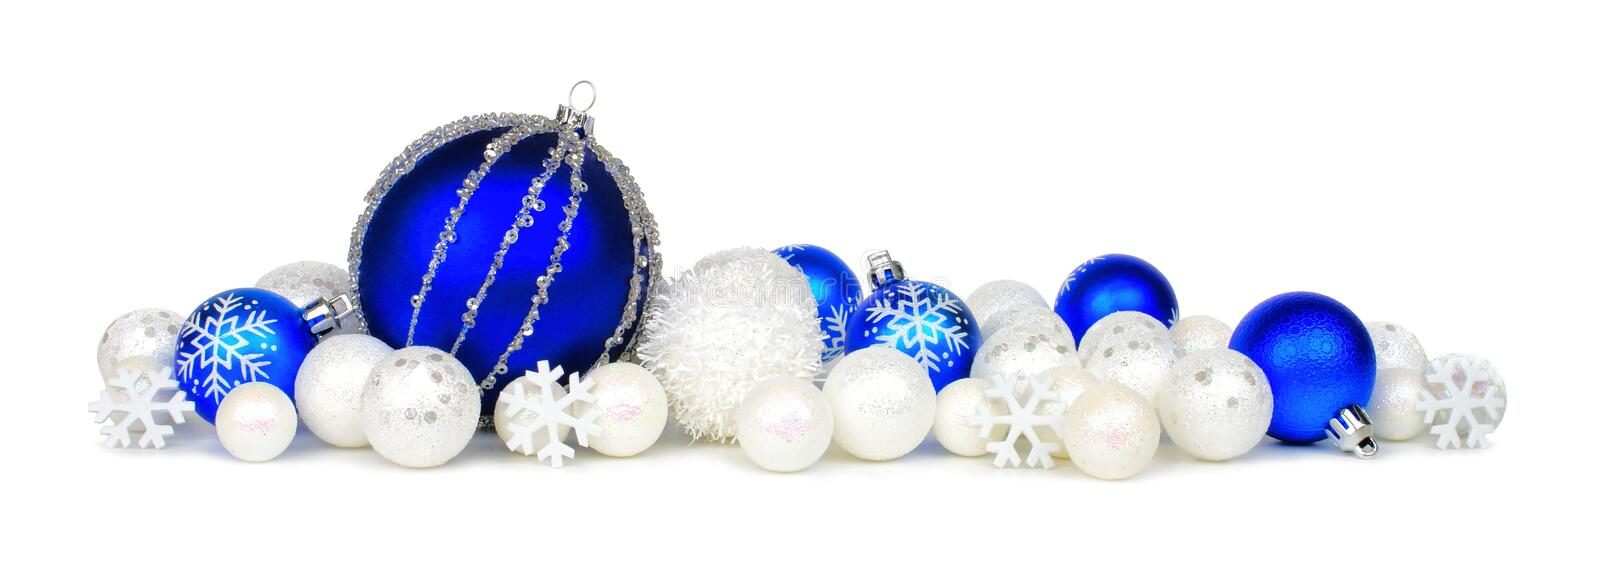 Blue and white Christmas ornament border. Christmas border of blue and white ornaments over a white background royalty free stock photos